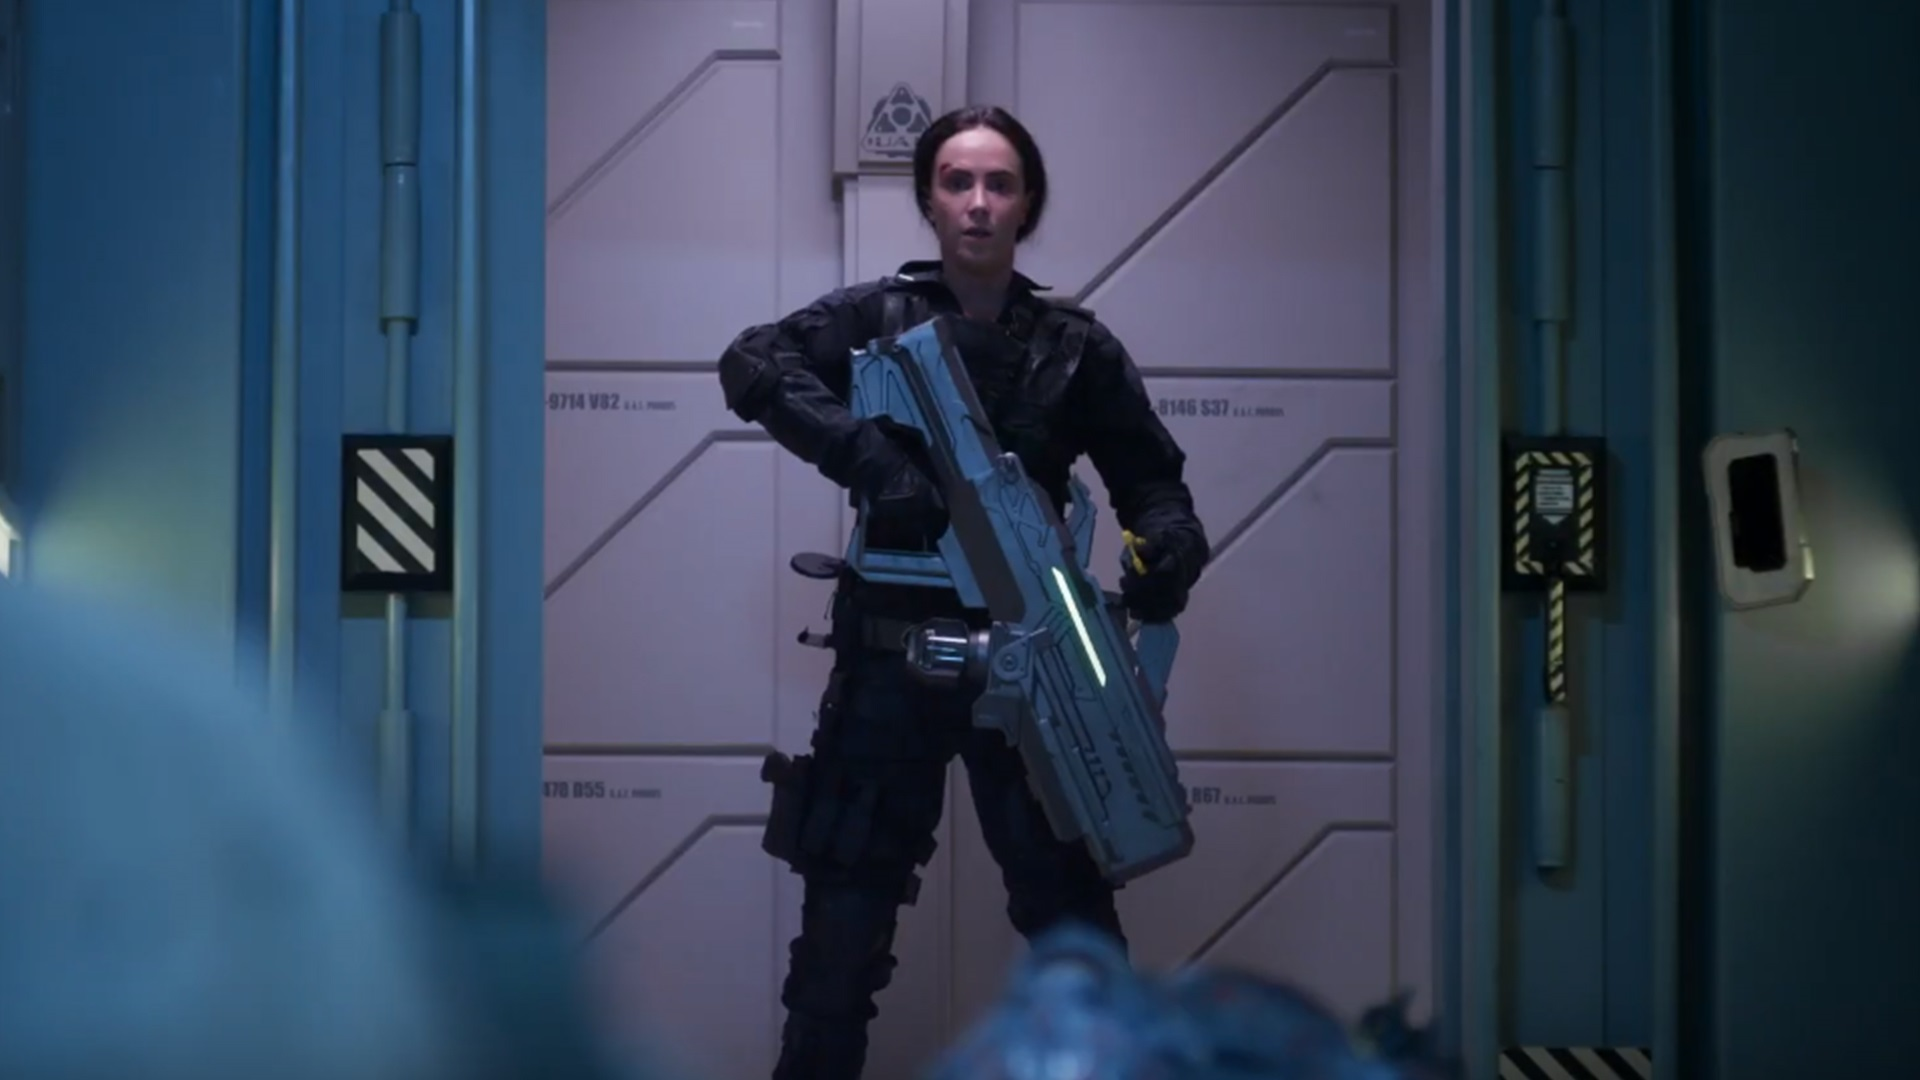 Lieutenant Joan Dark (Amy Manson) goes into action with the BFG in Doom: Annihilation (2019)